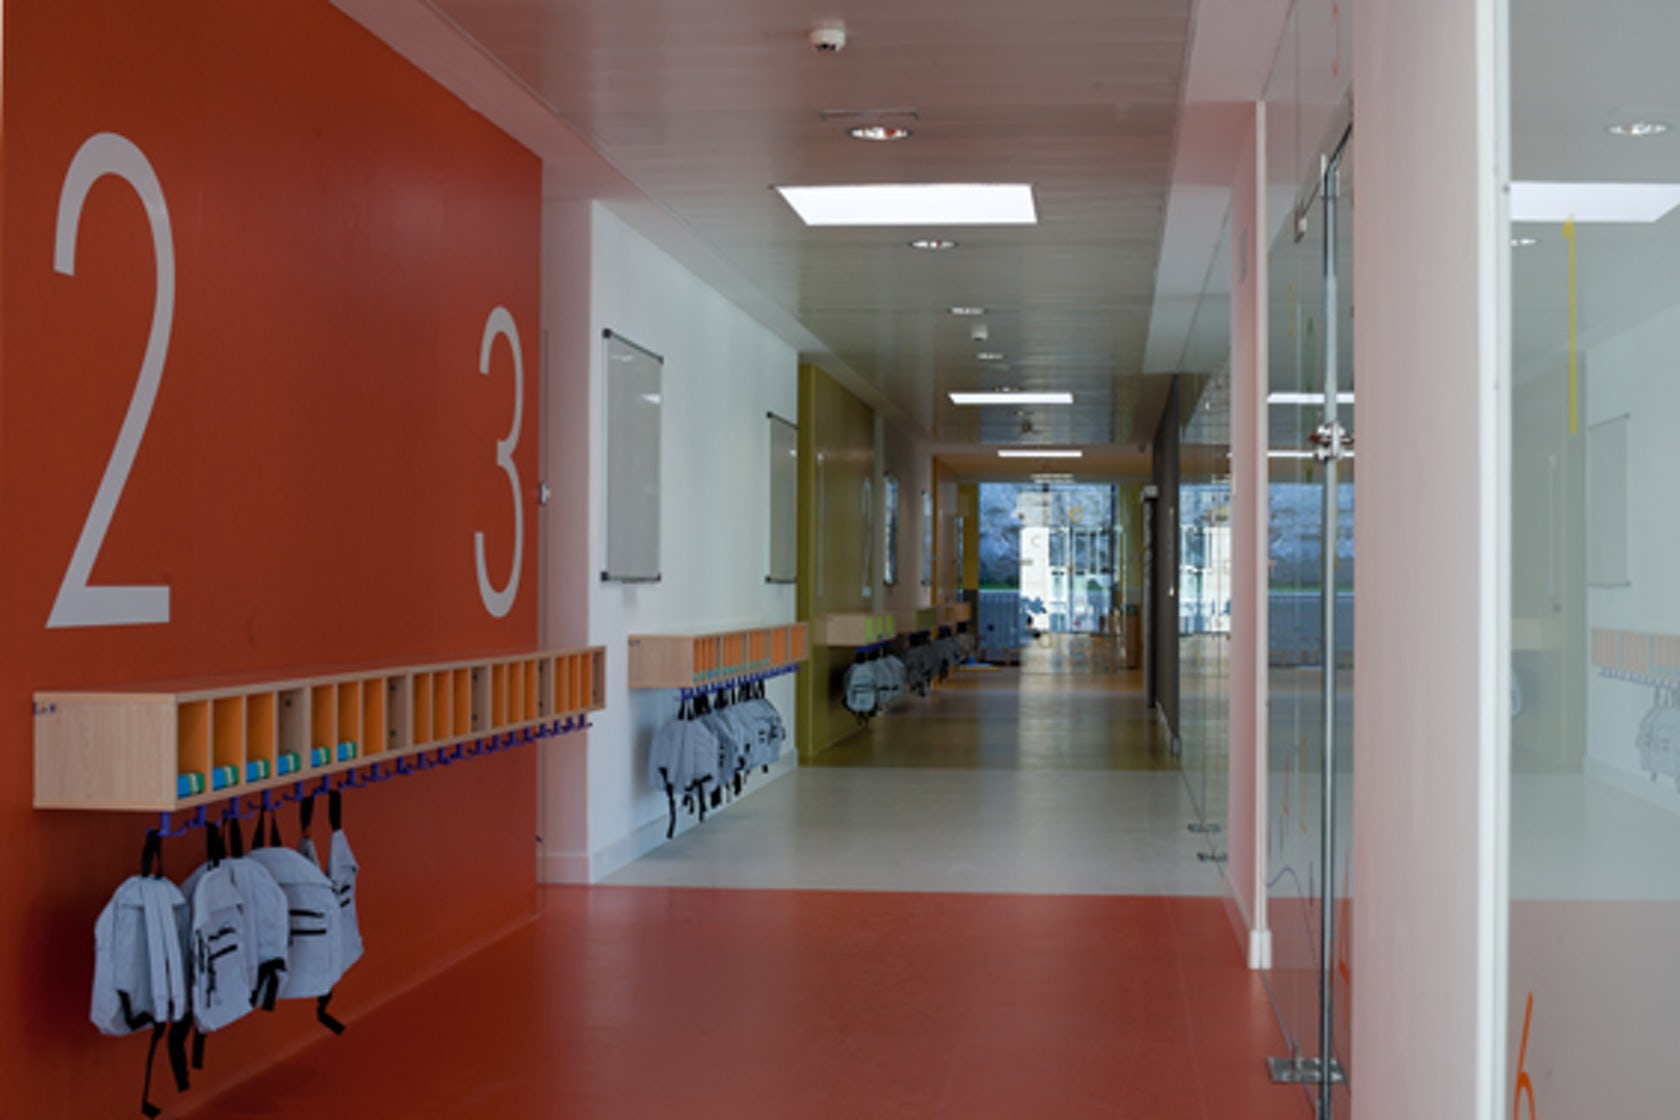 Center of social services in montealto a coru a spain - Estudios arquitectura coruna ...